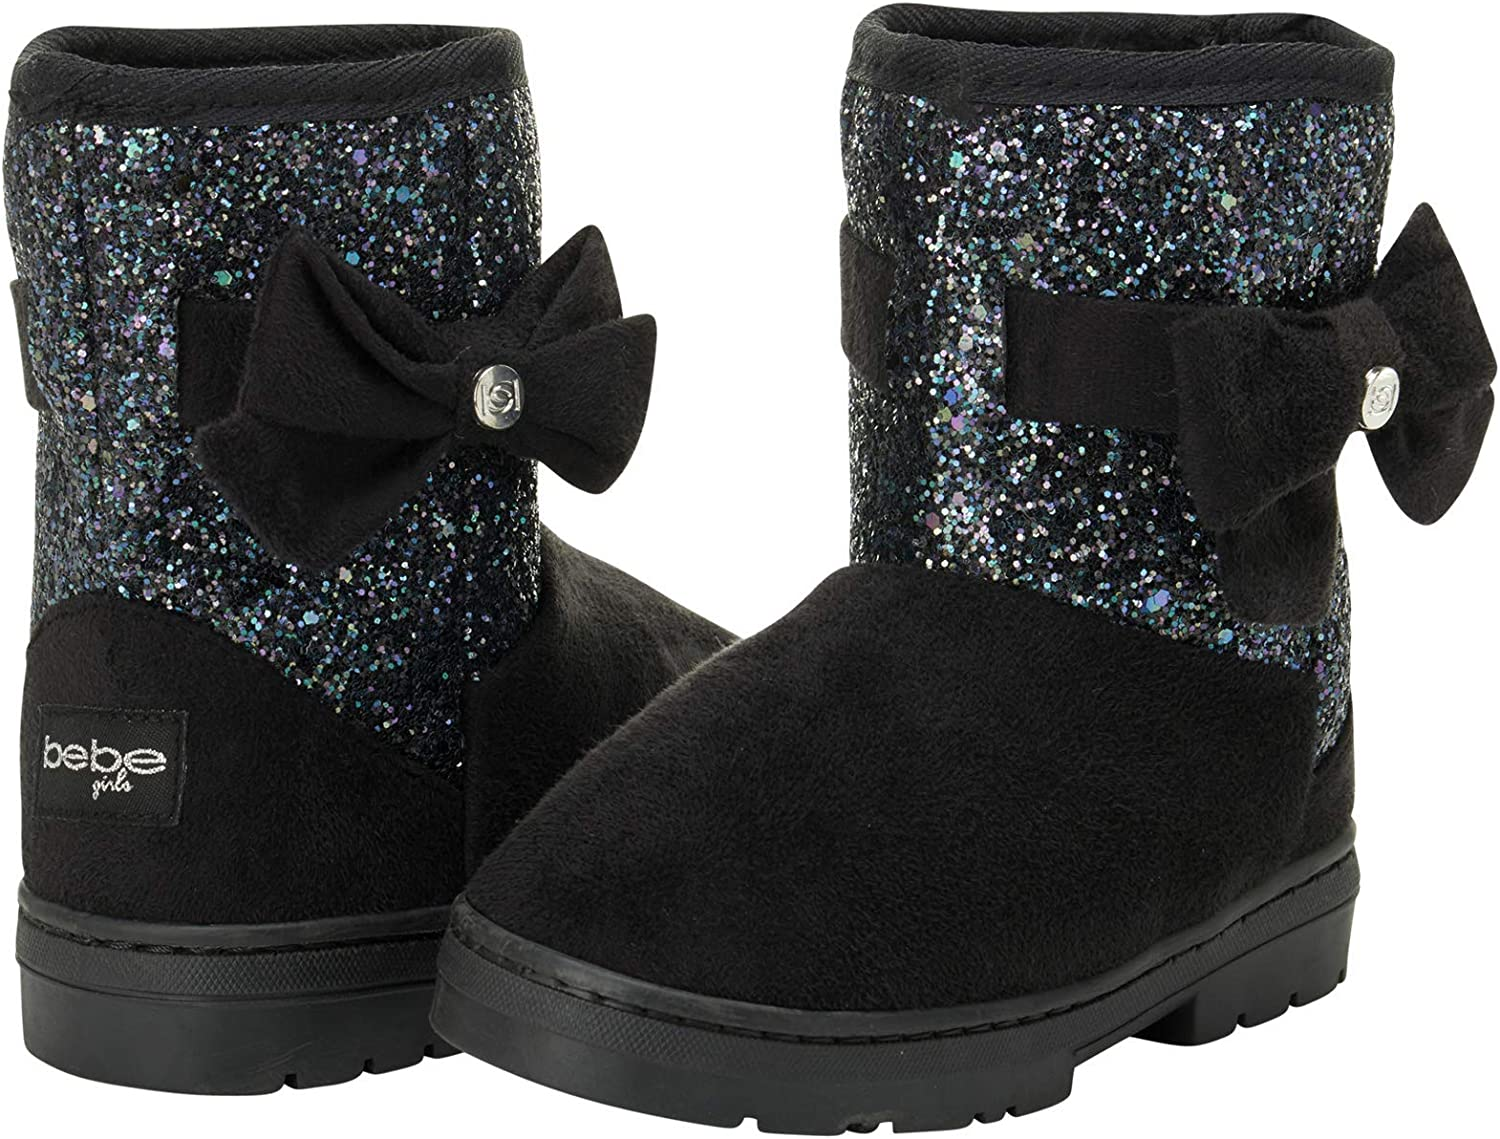 Kids Winter boots with pearls kids Boots with pearls Dazzled boots bling boots pearl kids shoes boots with beads bling boots Glitter boots